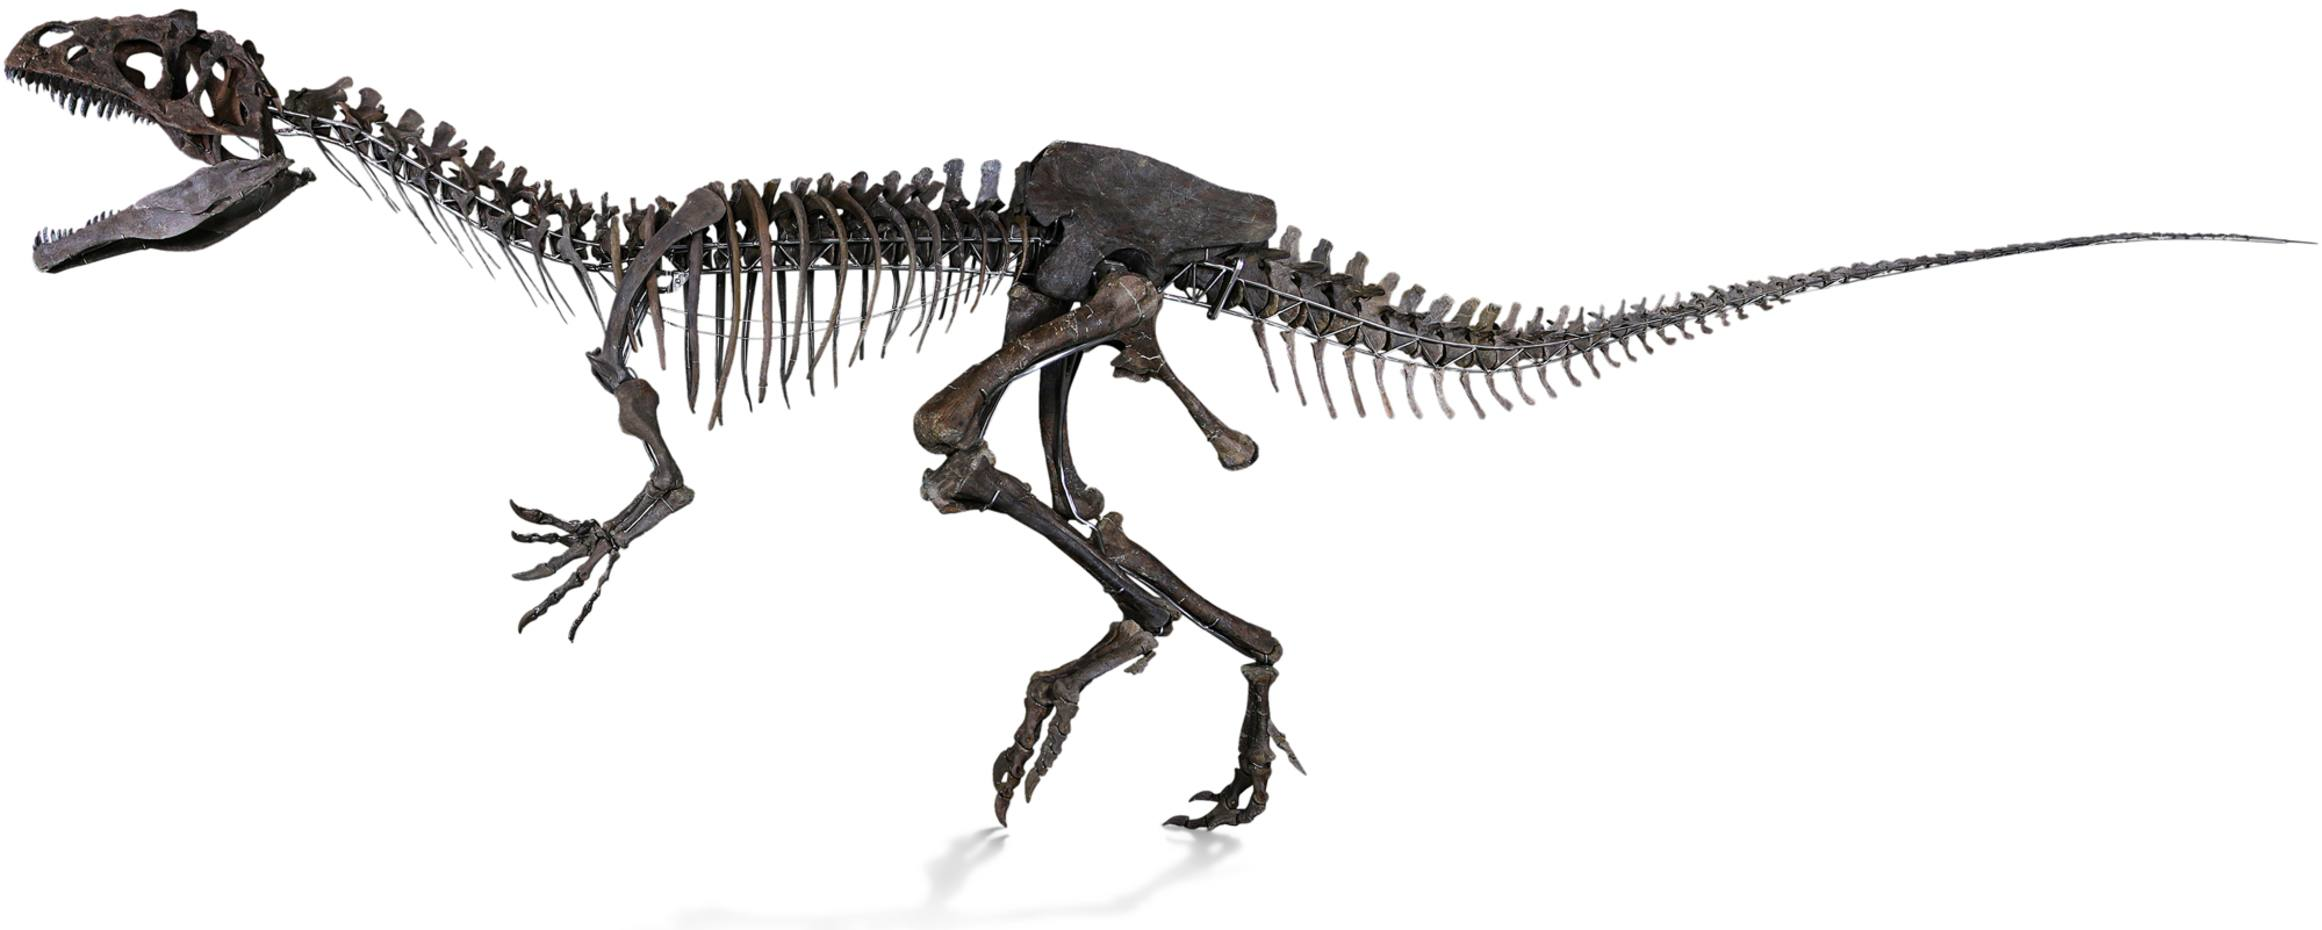 The unnamed theropod has an estimate of €1.2m-€1.8m